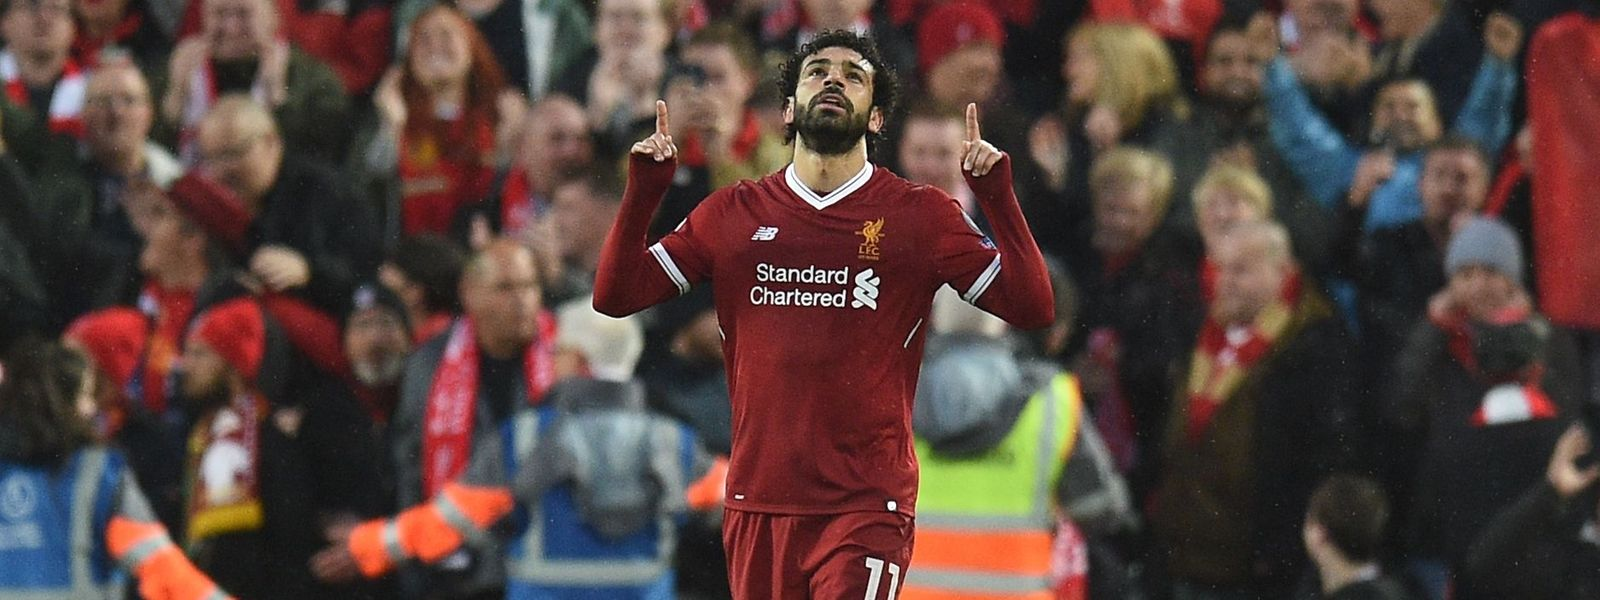 Can Mo Salah Win The Ballon d'Or?